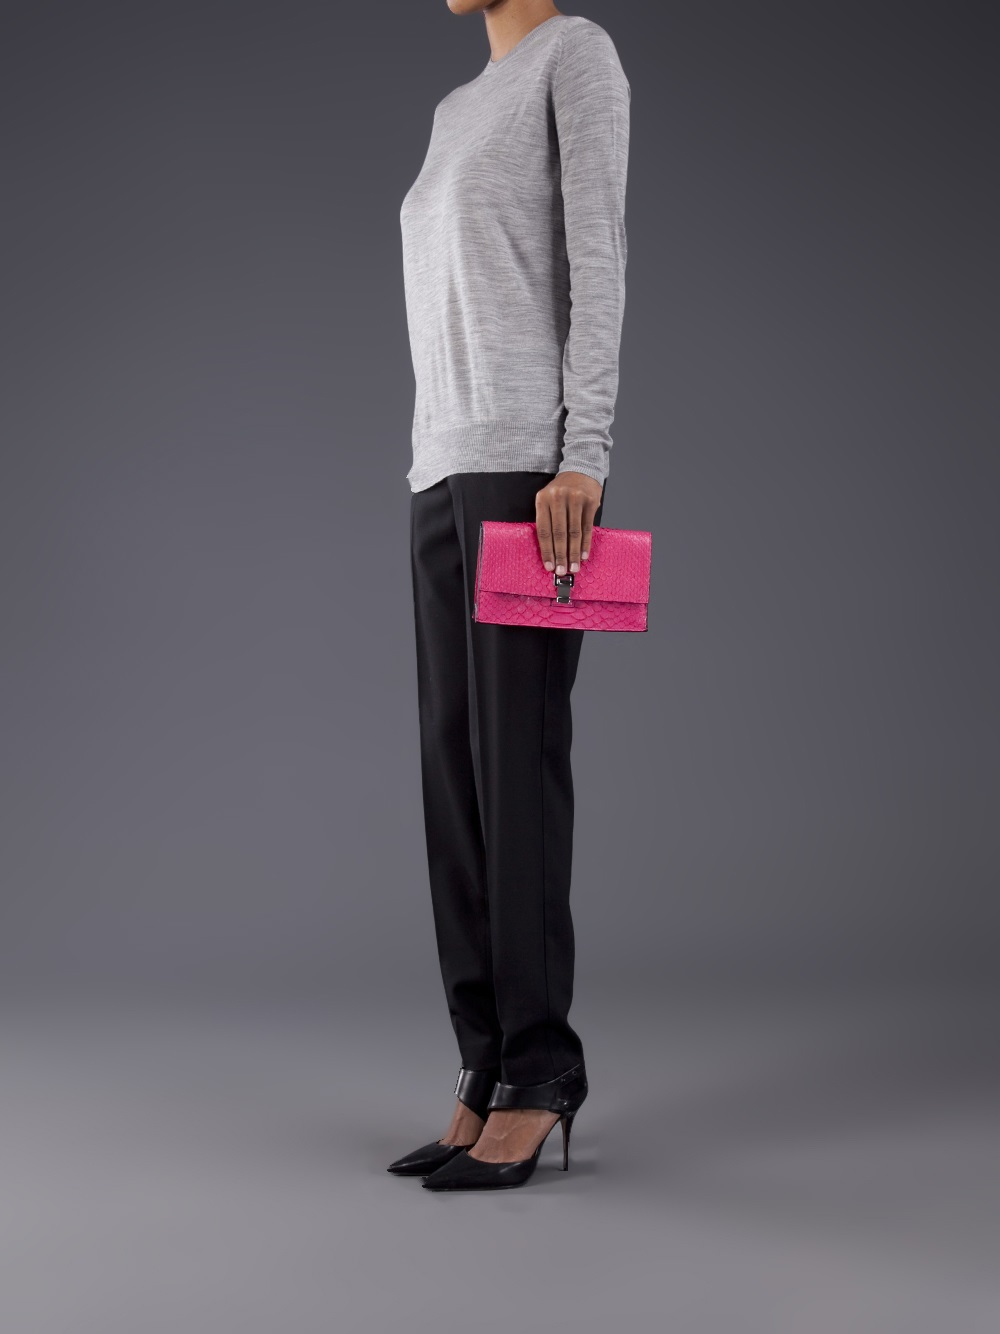 9c0f0afad992c proenza-schouler-pink-purple-extra-small-lunch-bag-product-2-12873977-387818523.jpeg